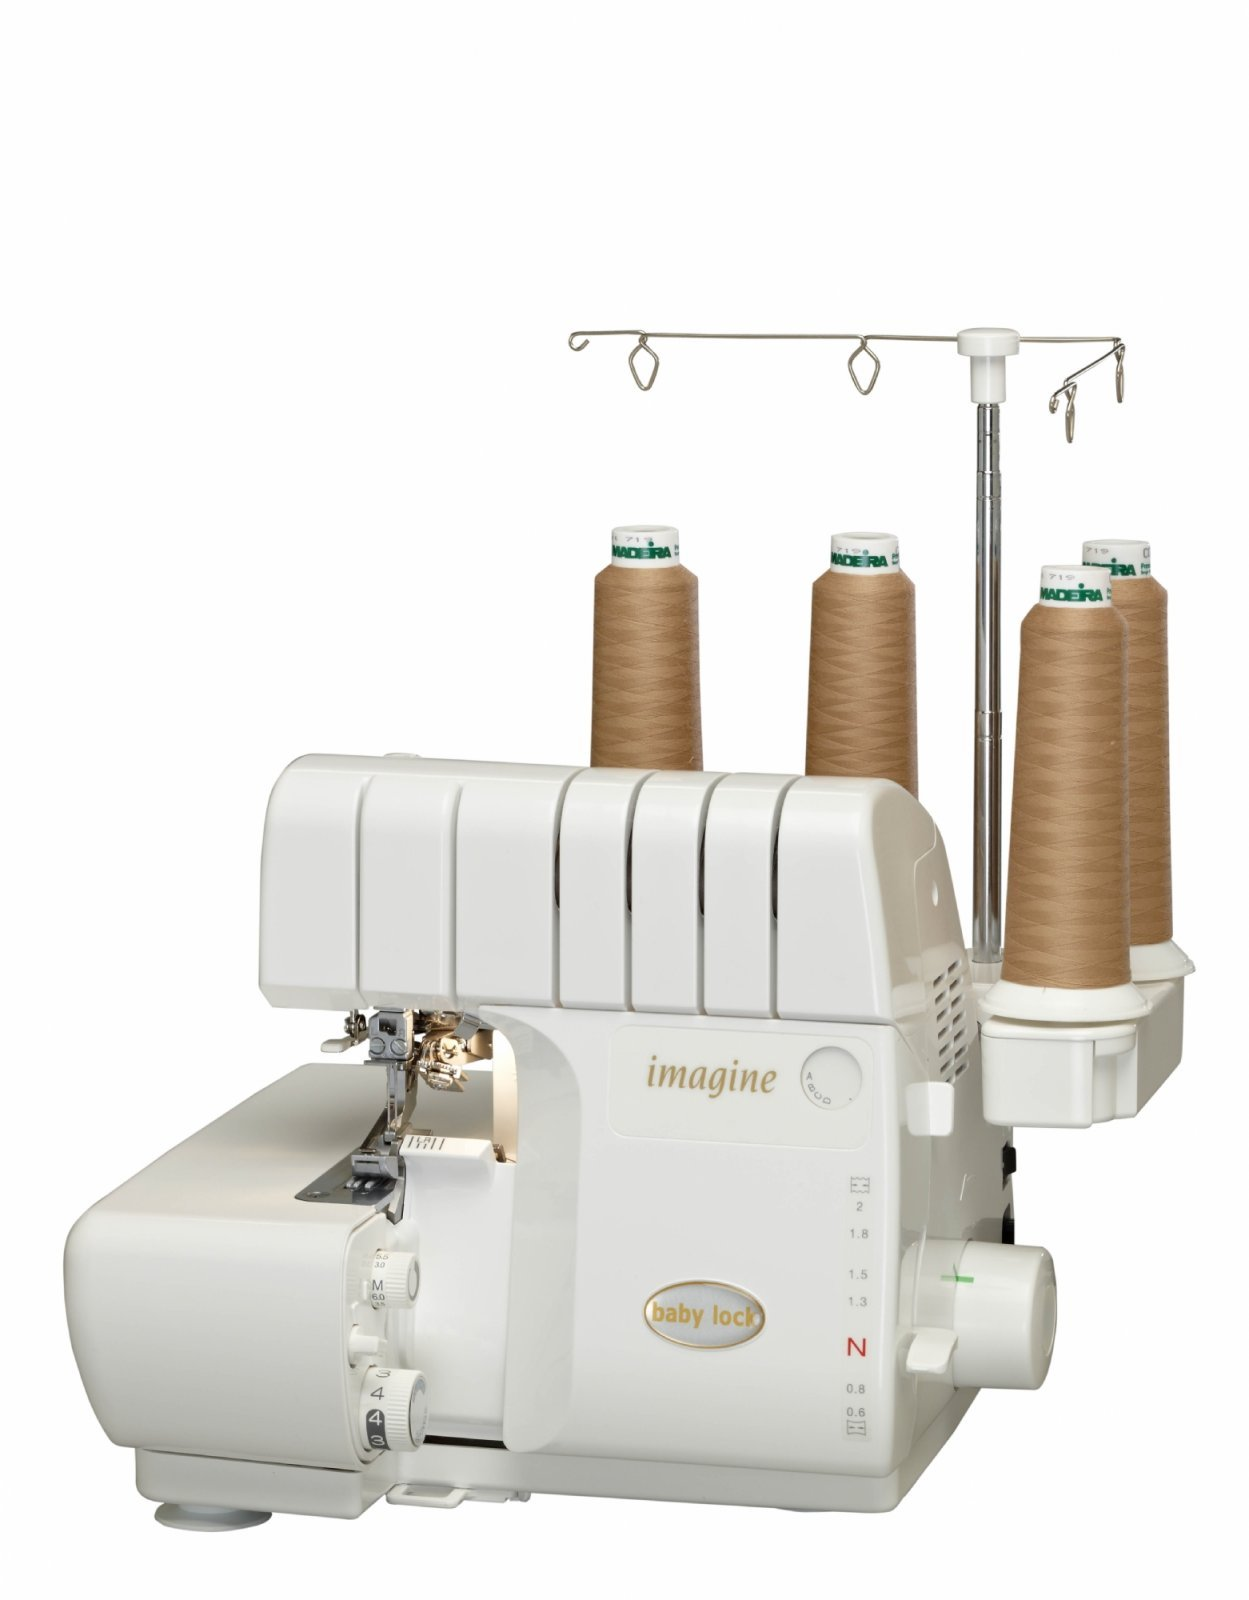 BabyLock Imagine Serger 4/3/2 Thread ATD Diff Feed Jet-Air BLE1AT-2